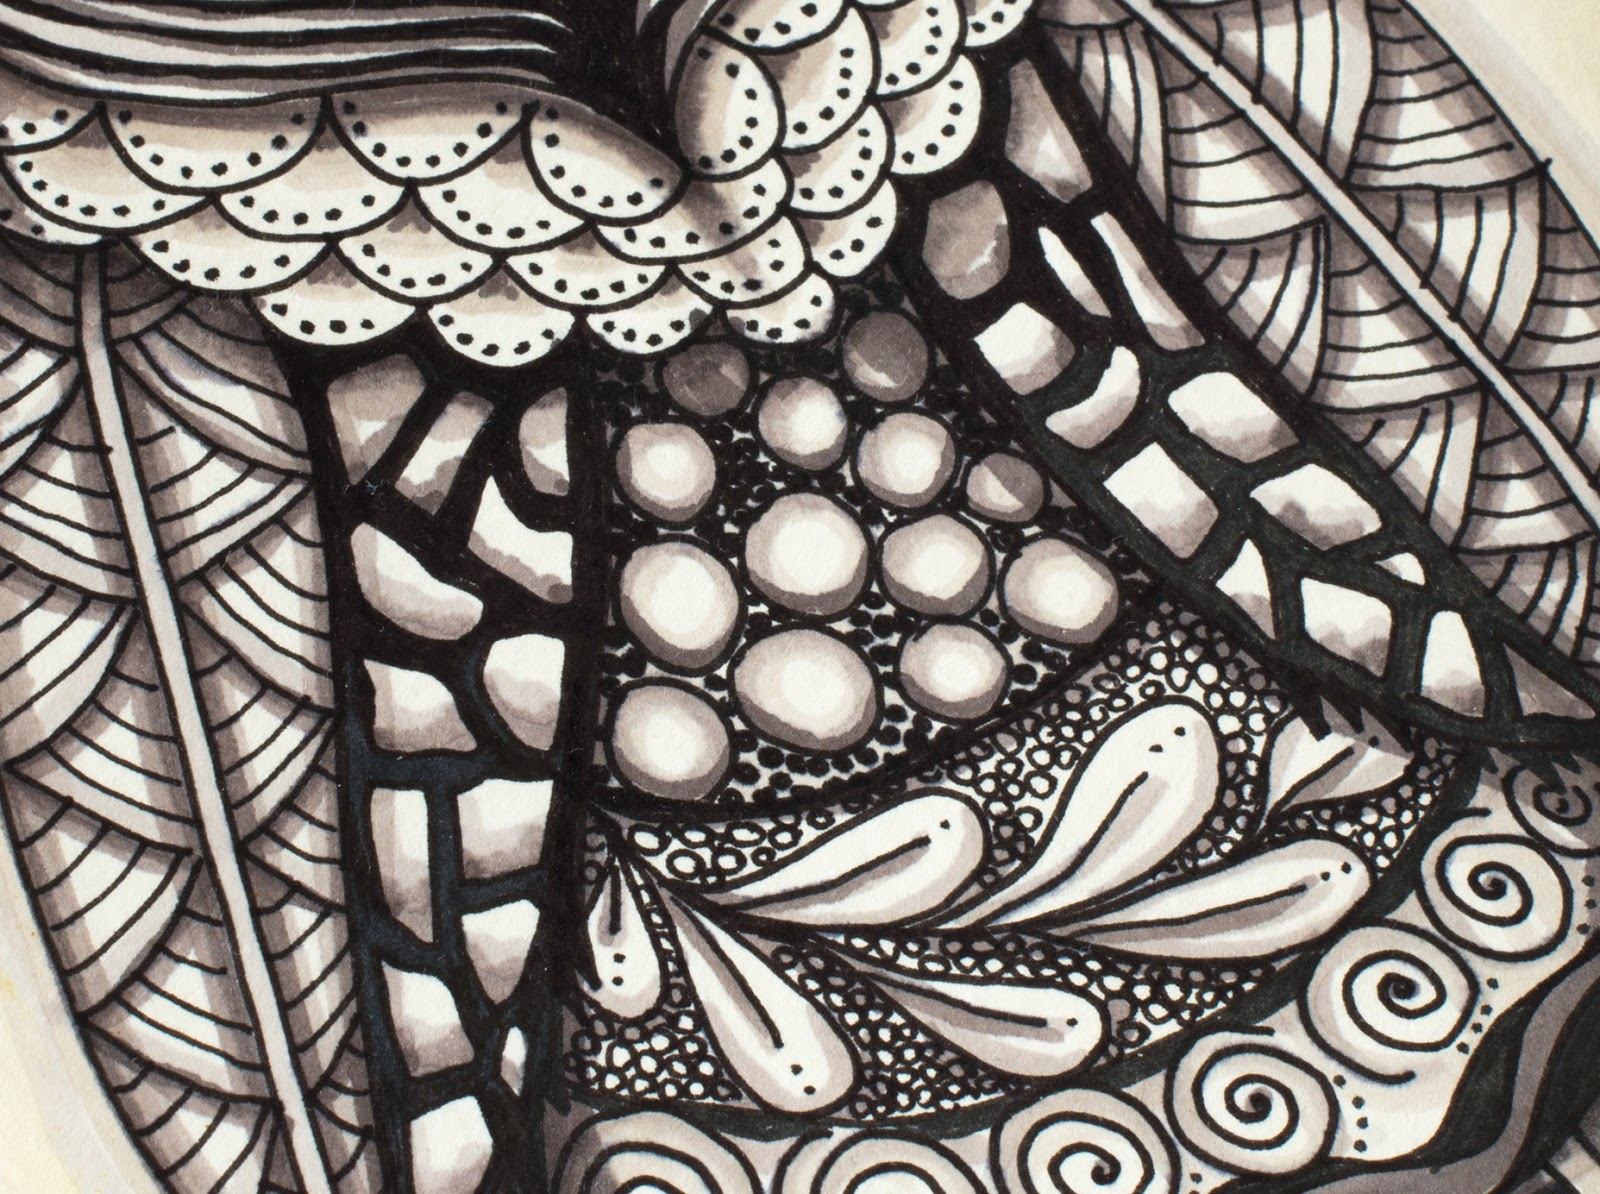 Evening Zentangle - Session 3